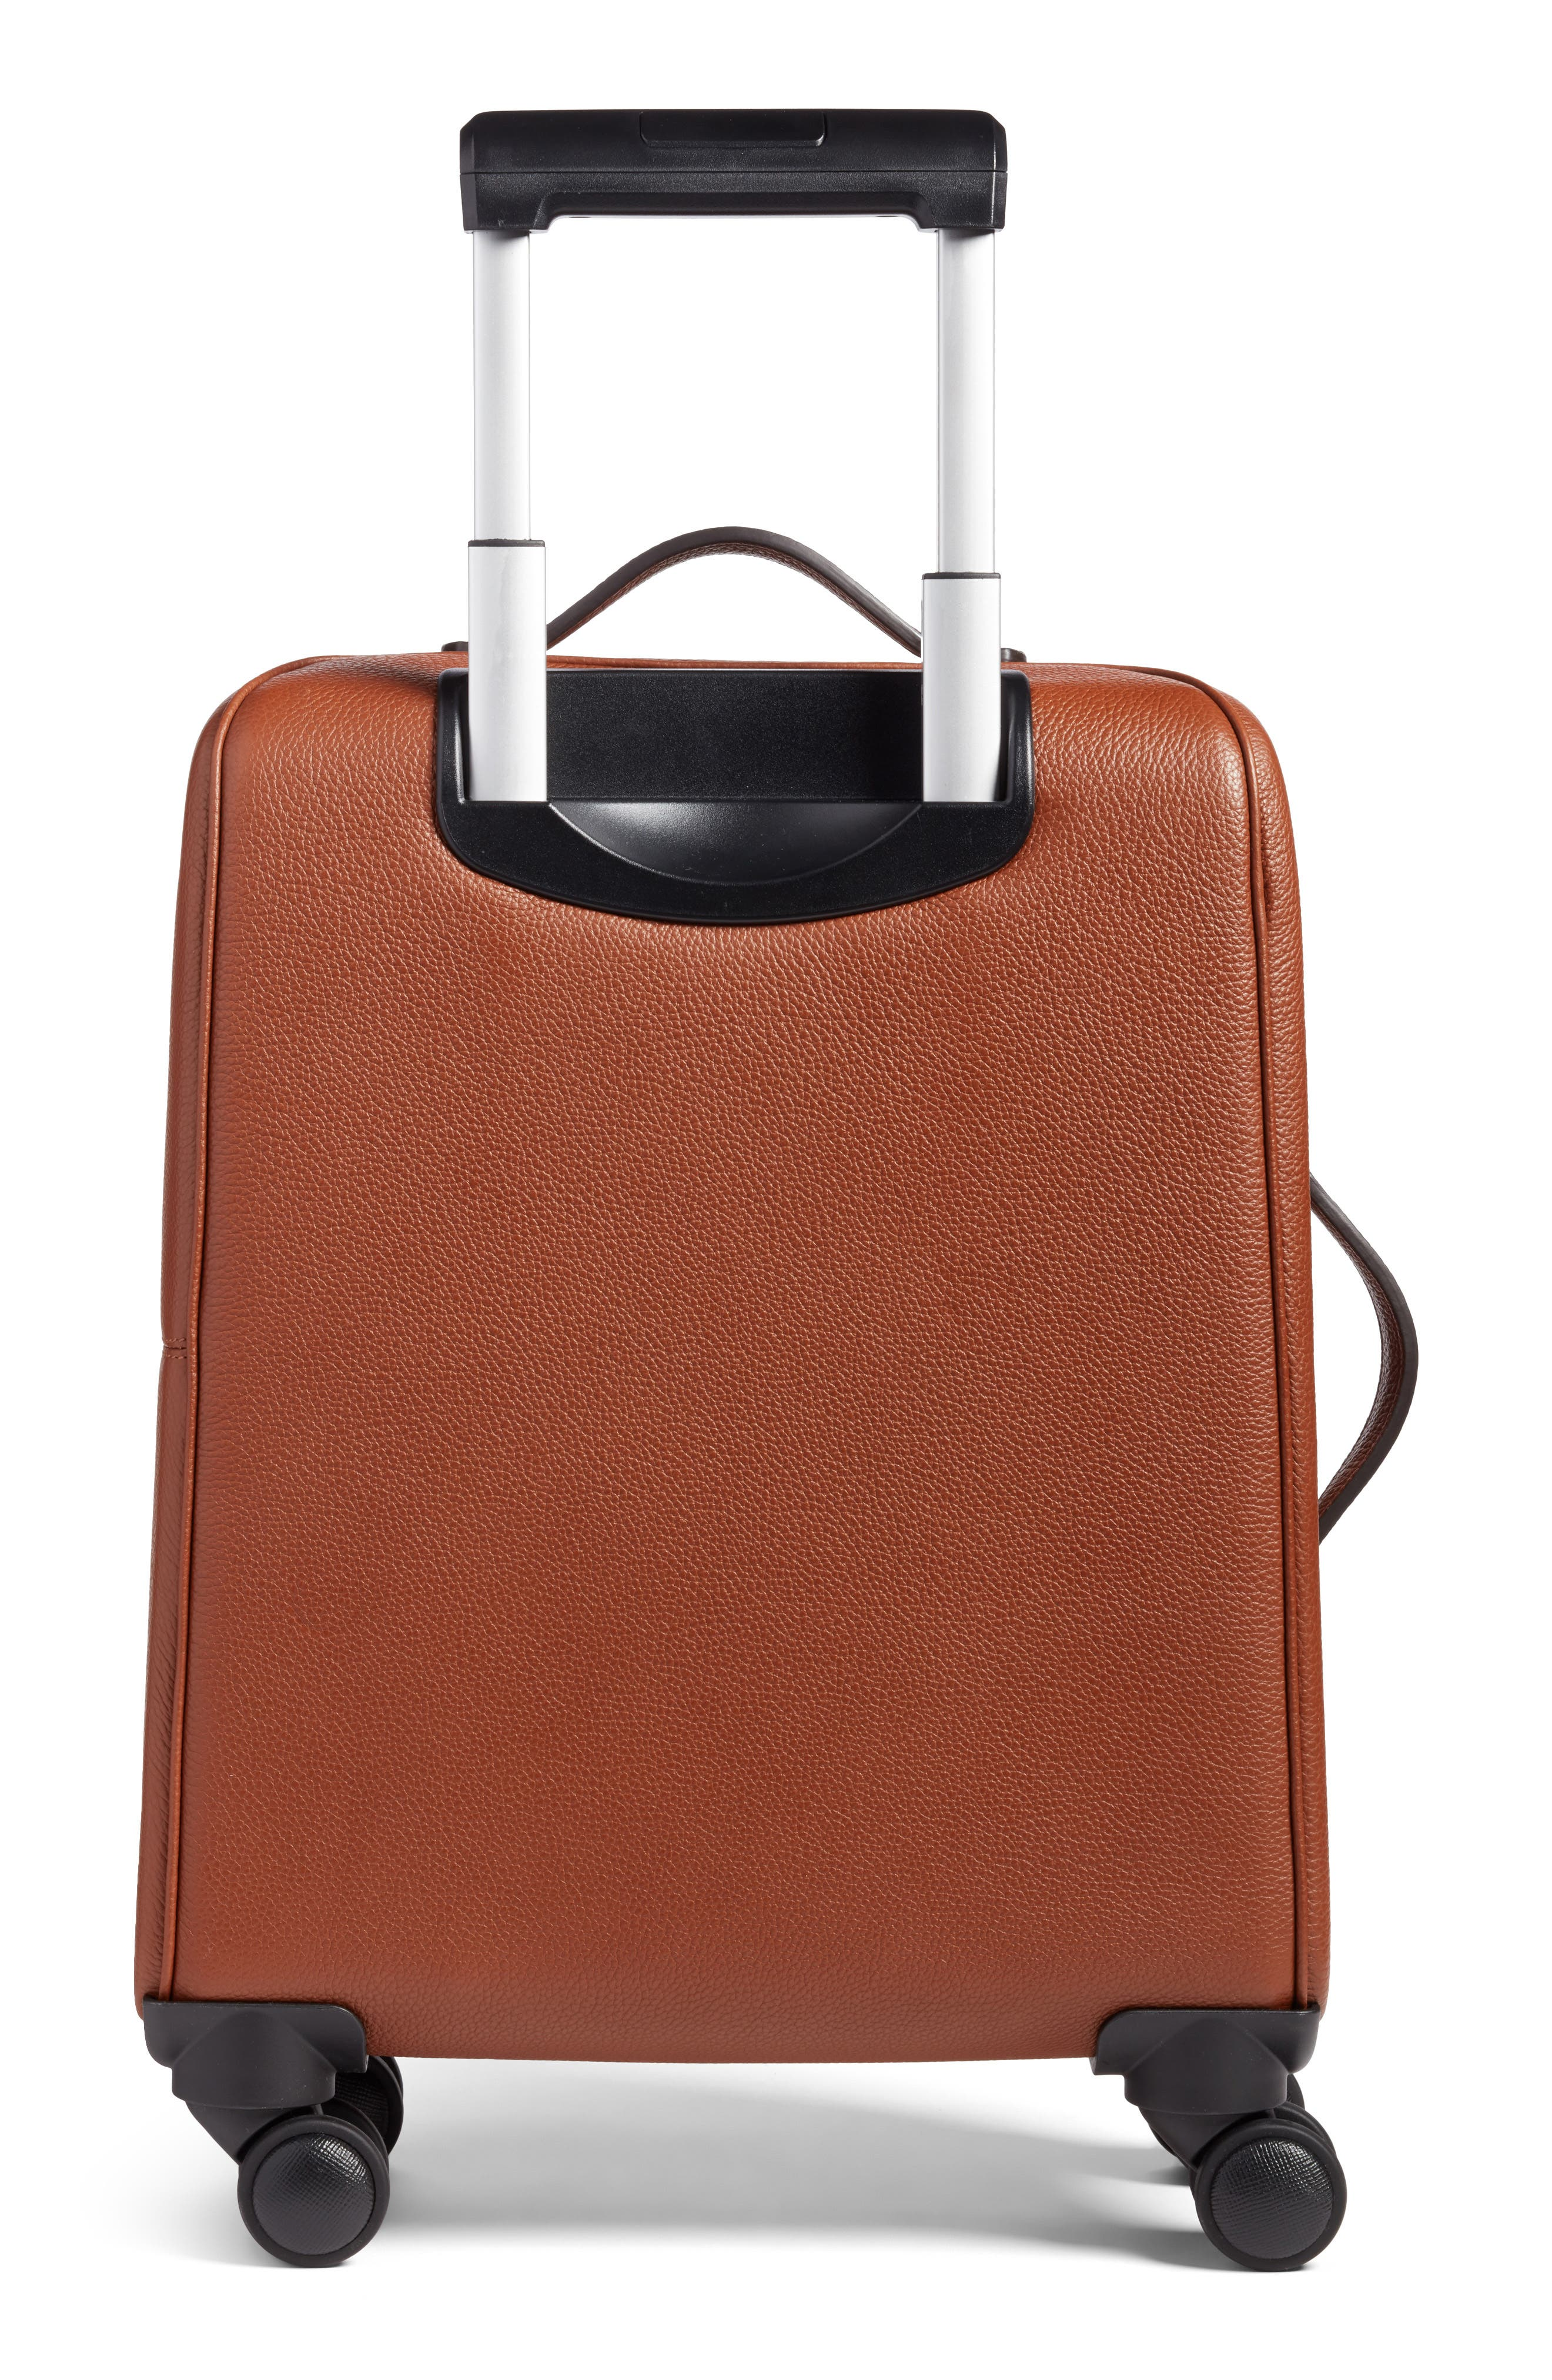 Trolley Spinner Wheeled Carry-On Suitcase,                             Alternate thumbnail 2, color,                             Sienna